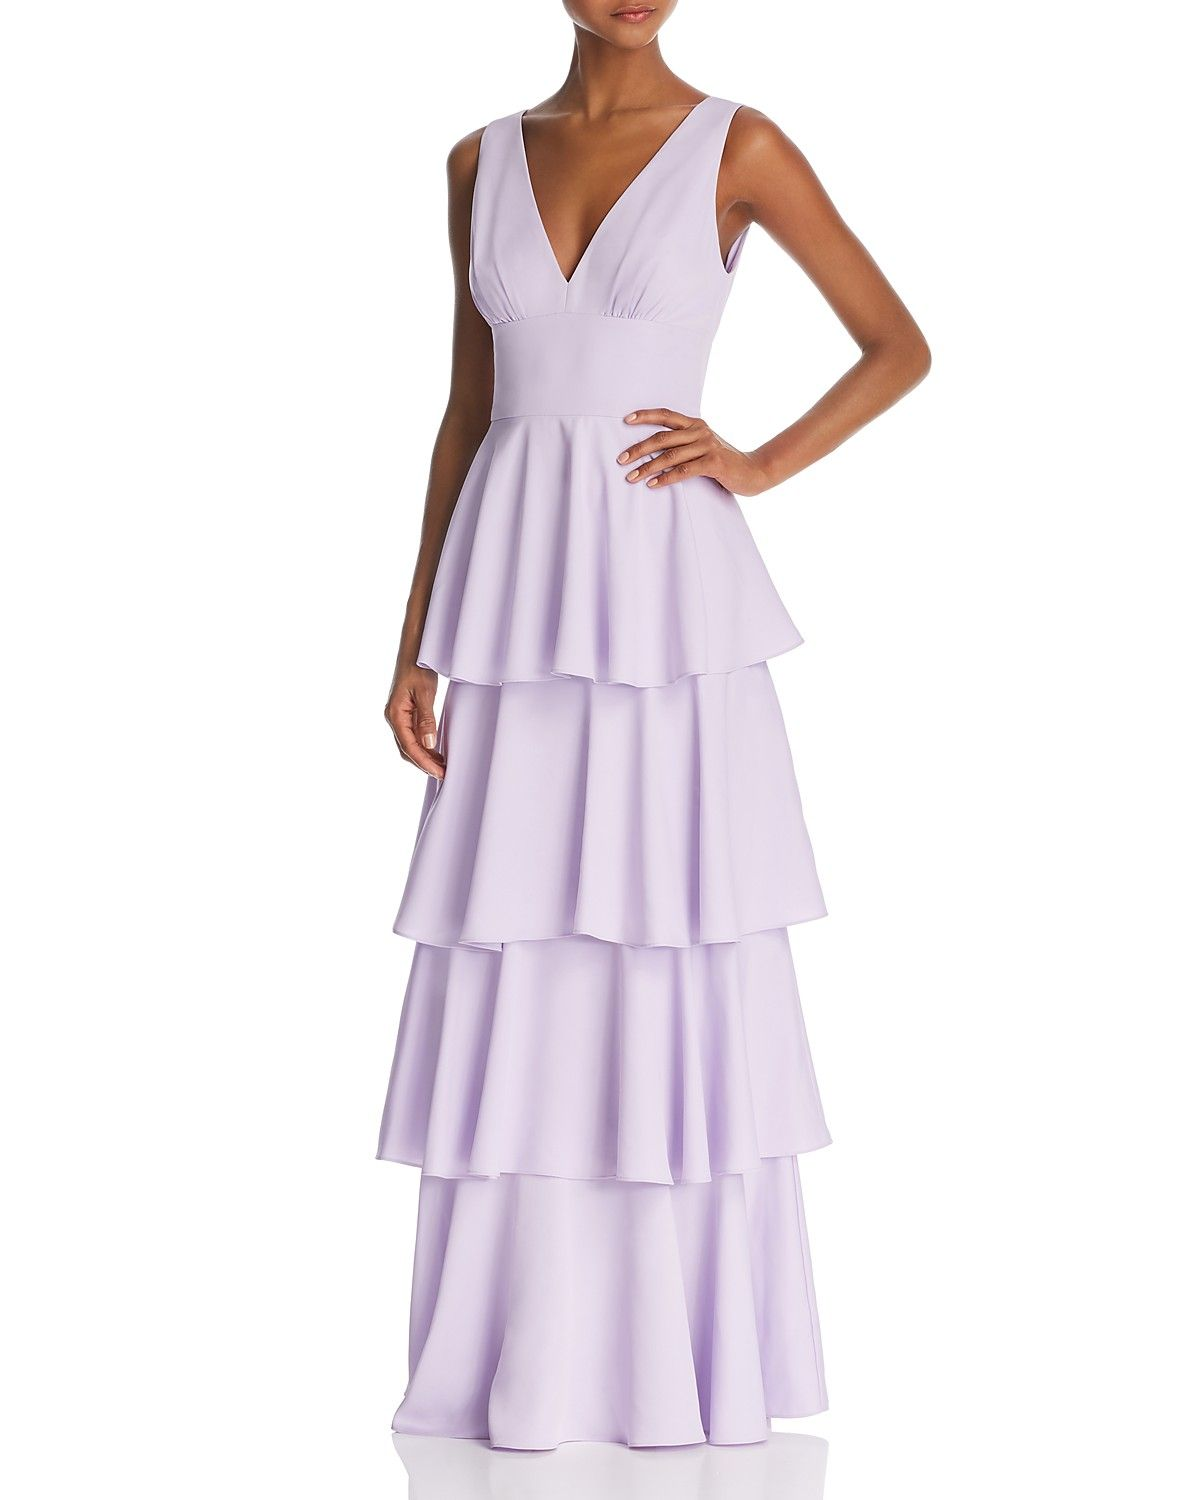 Nicole Miller New York Sleeveless Tiered Gown 100 Exclusive Women Bloomingdale S Formal Dresses Gowns Strapless Casual Dress Formal Dresses [ 1500 x 1200 Pixel ]